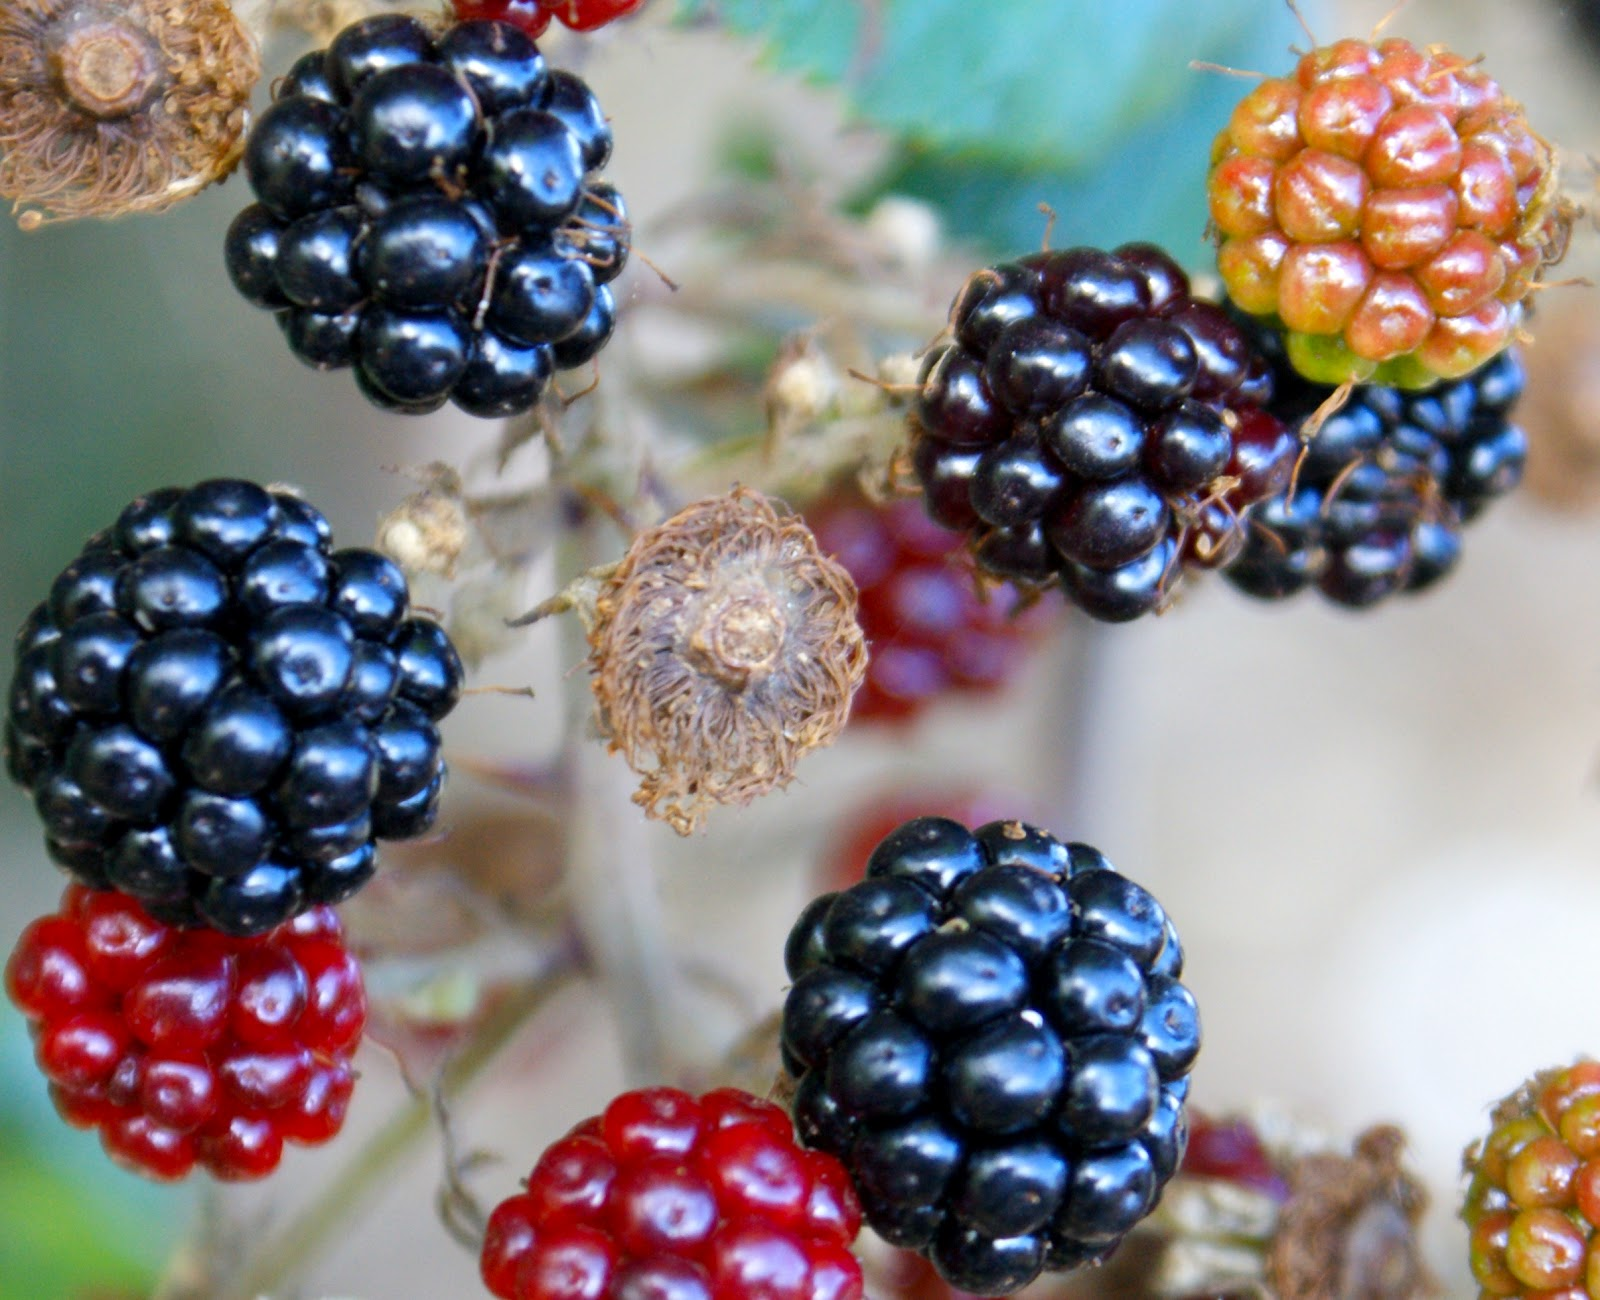 The Gardening Shoe: There's No Fool Like a Blackberry Fool